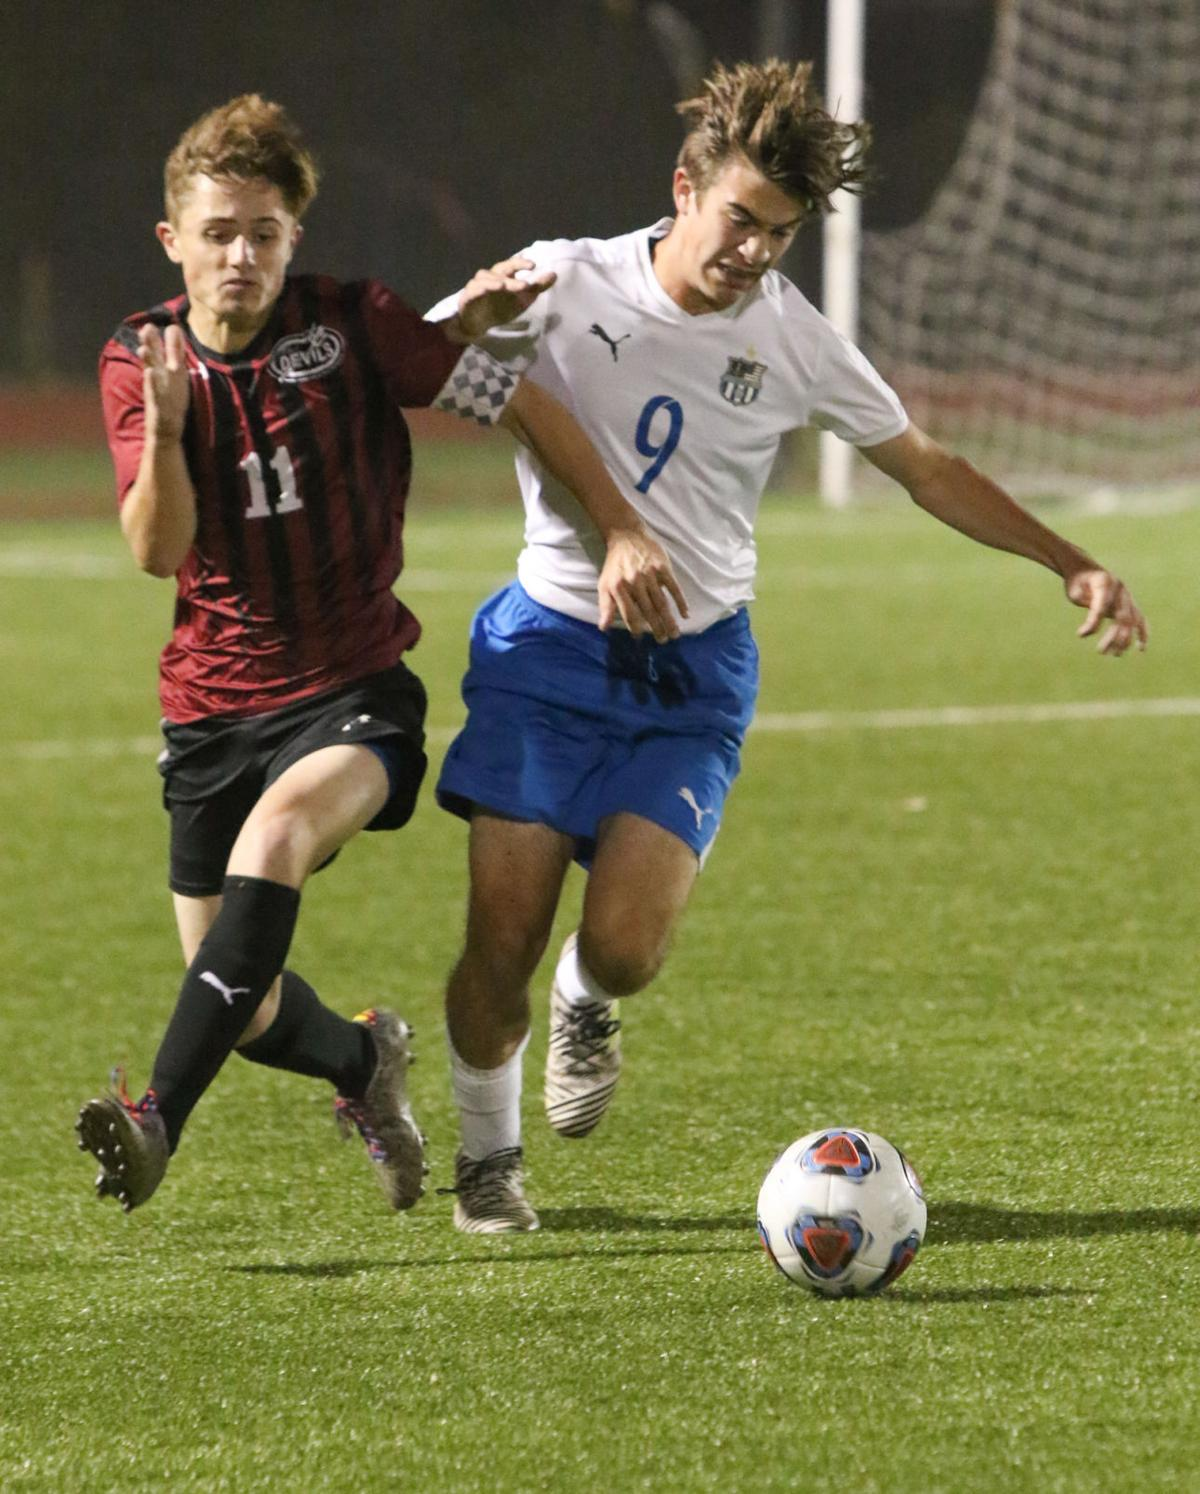 Boys soccer - EC Sectional - Lowell - Lake Central